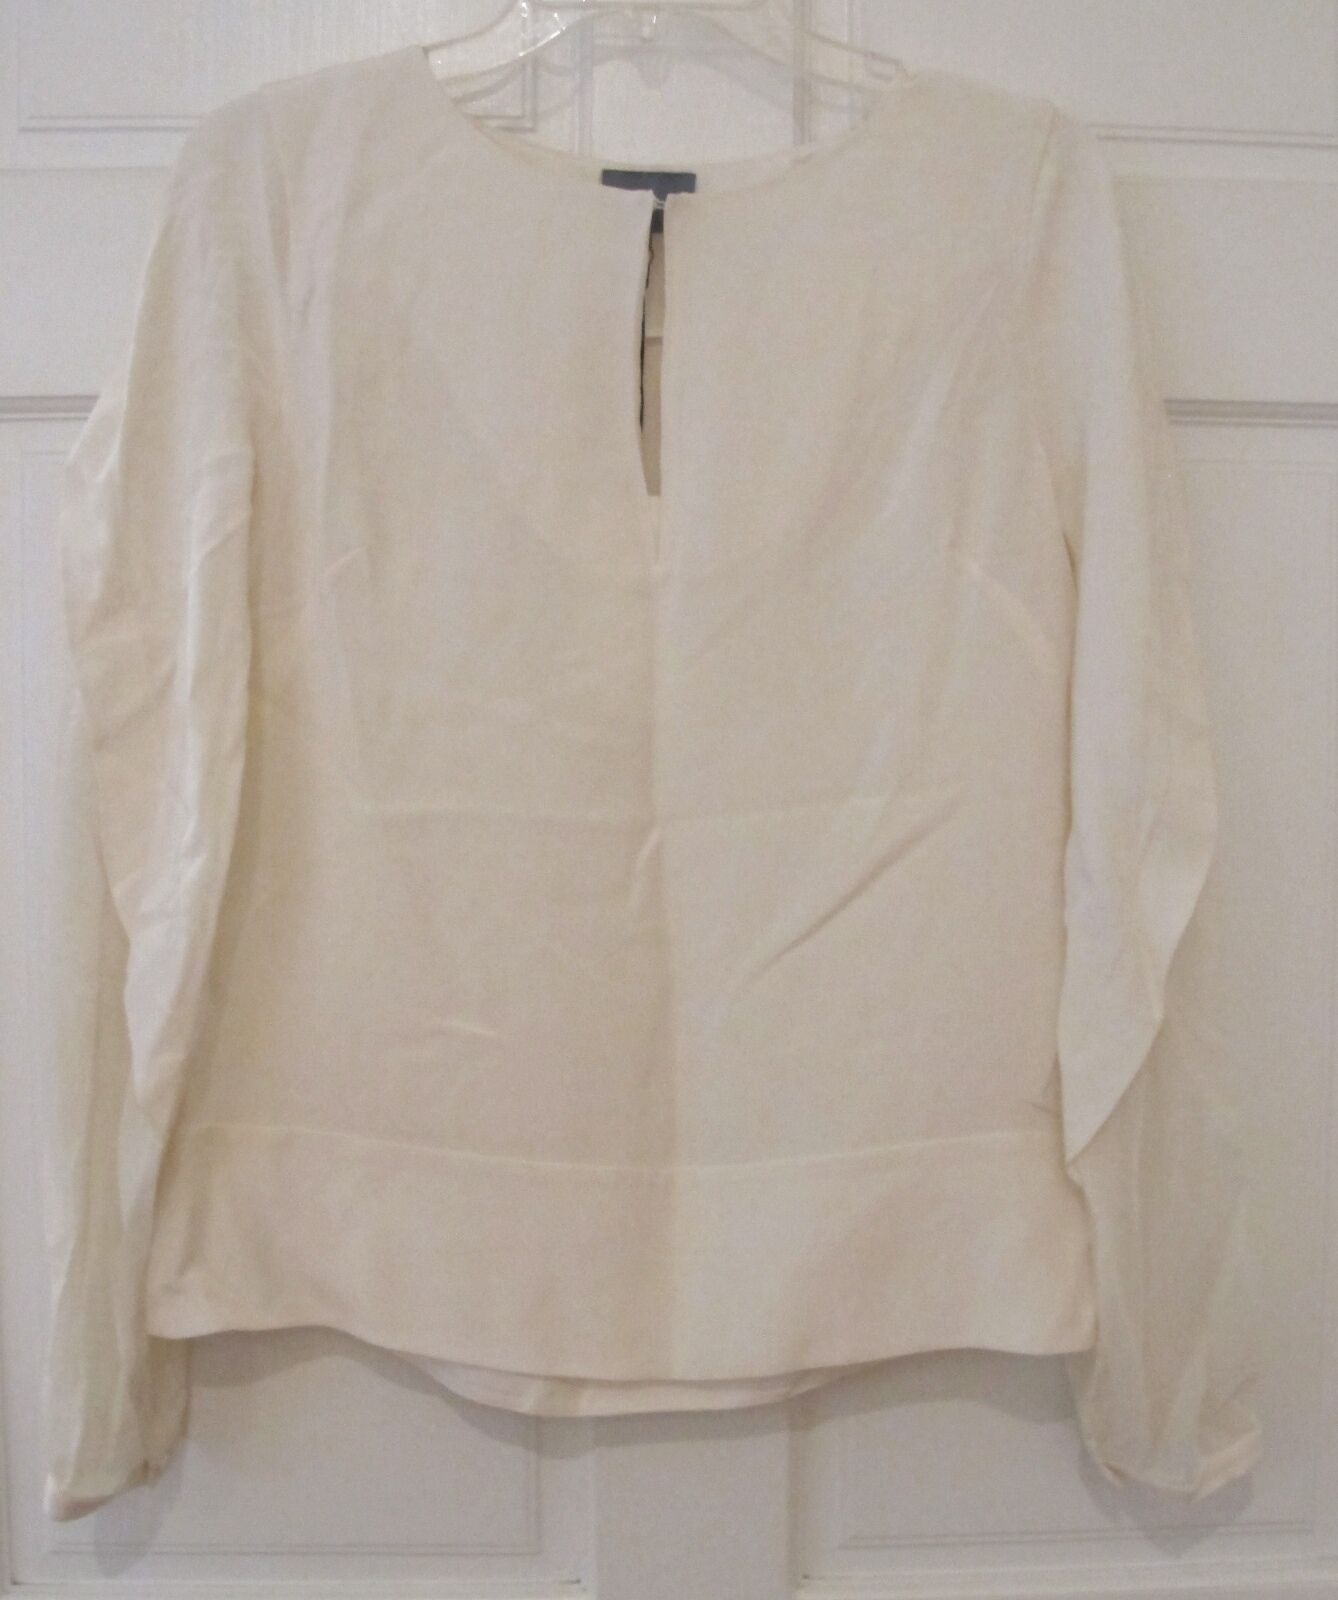 Maiyet Poet Cape Blouse Ivory Draped Long Sleeve Top Sustainable Größe 38 6 NWT